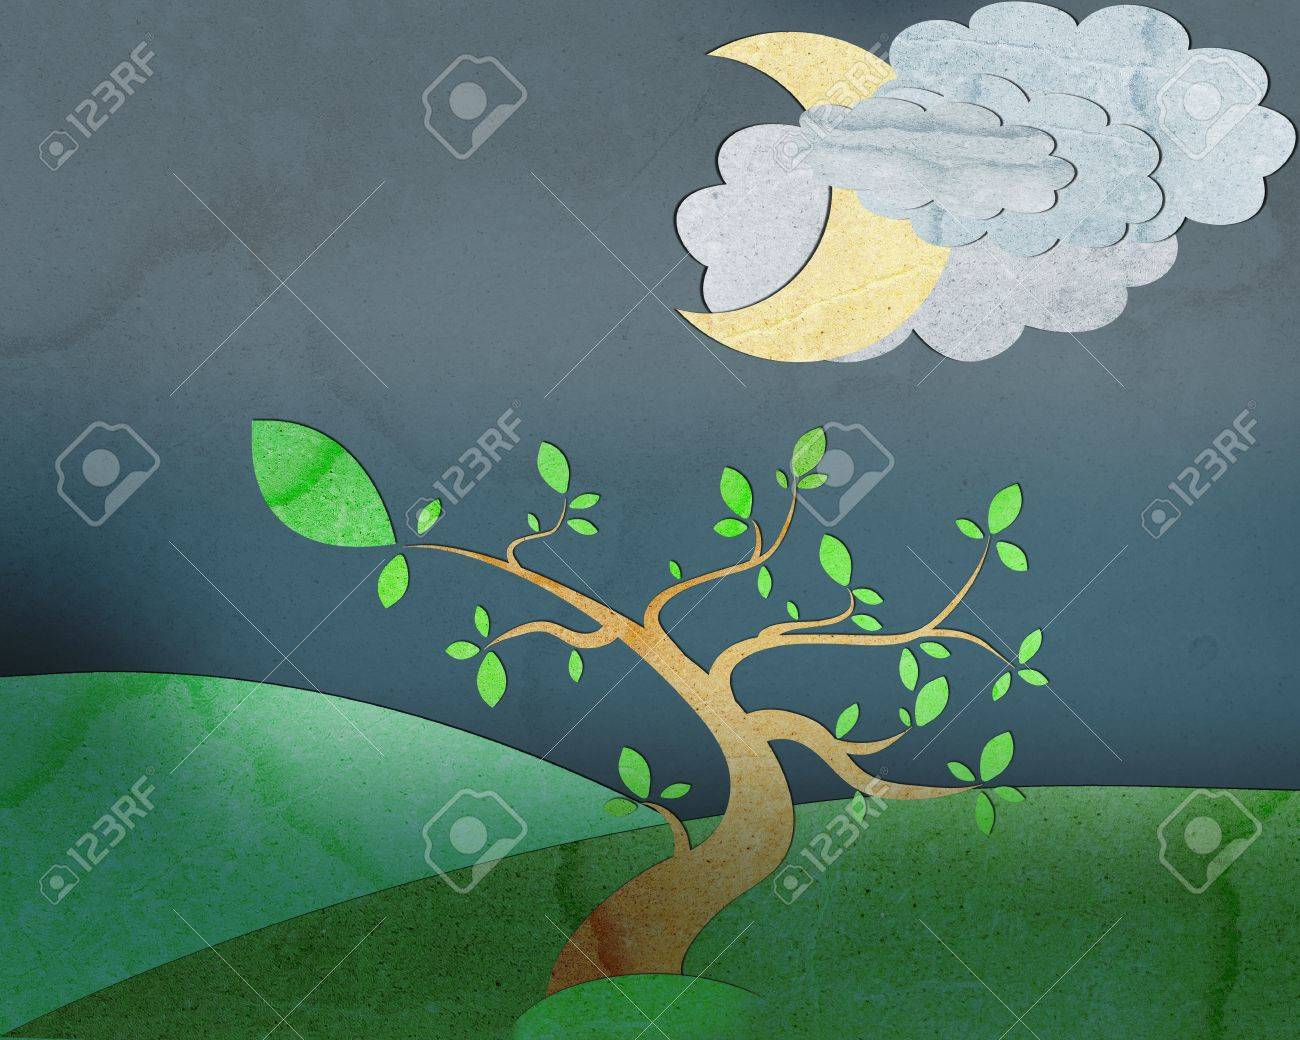 trees on hill with nice sky and moon background, create from paper texture. Stock Photo - 13619395